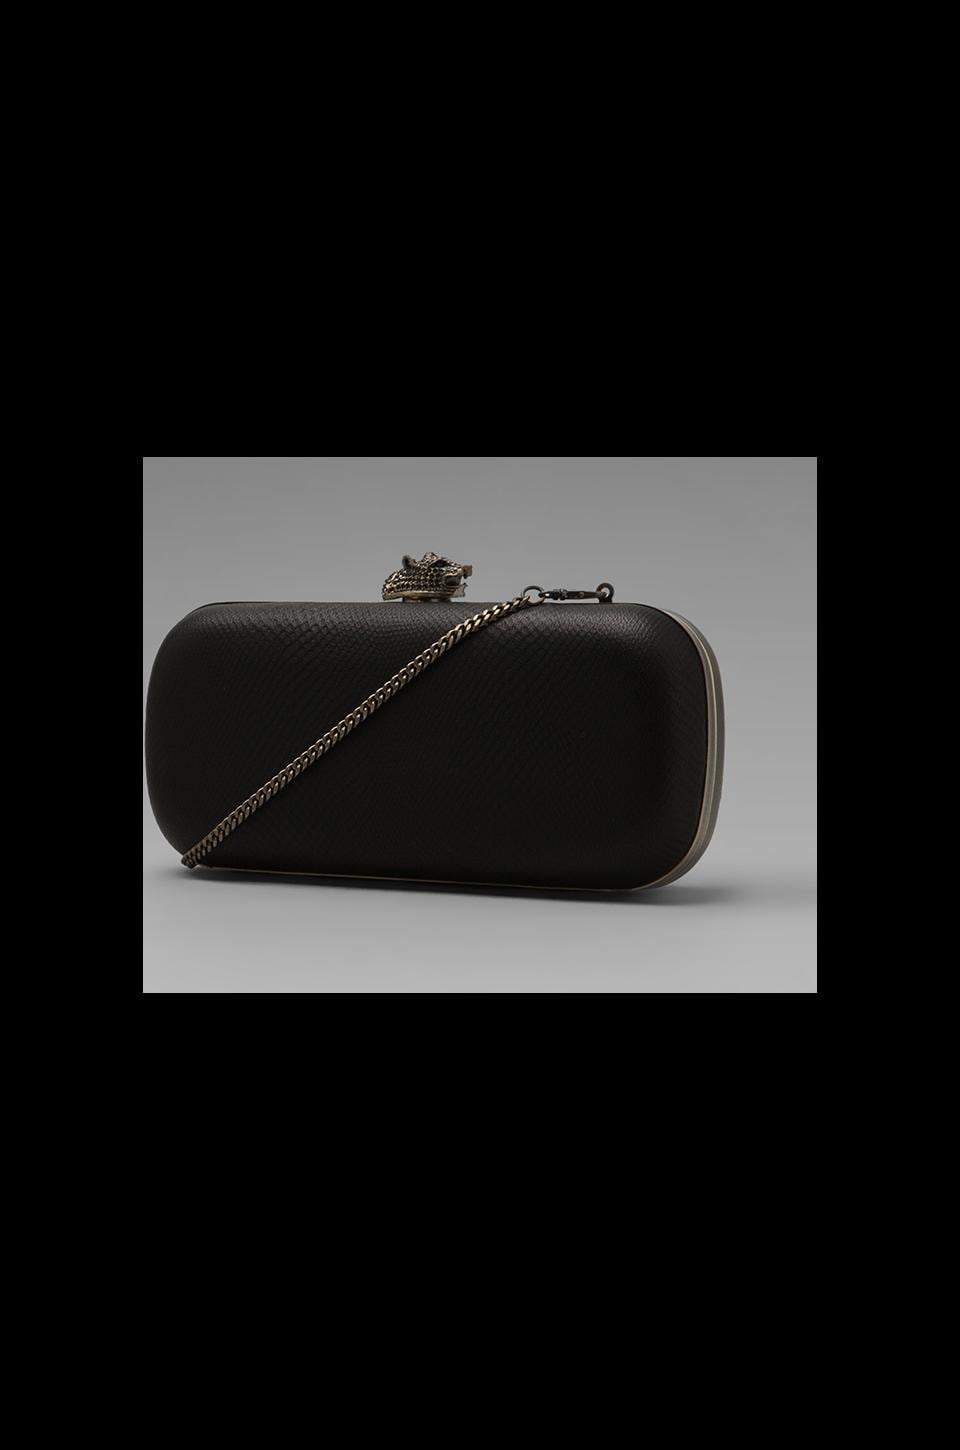 House of Harlow Adele Clutch in Matt Black with Brass Hardware